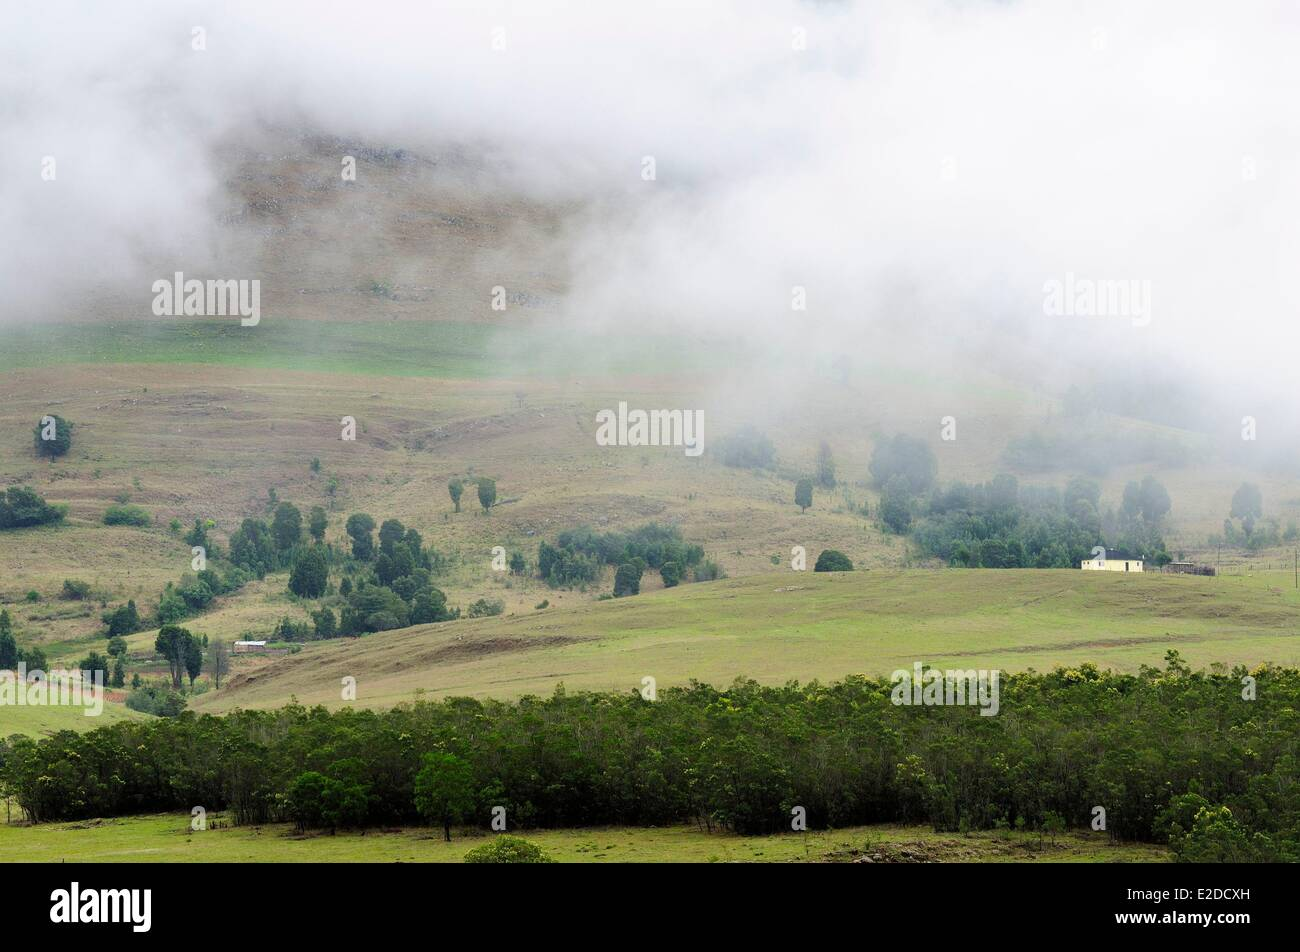 Swaziland Hhohho district the countryside north of Mbabane the capitale - Stock Image